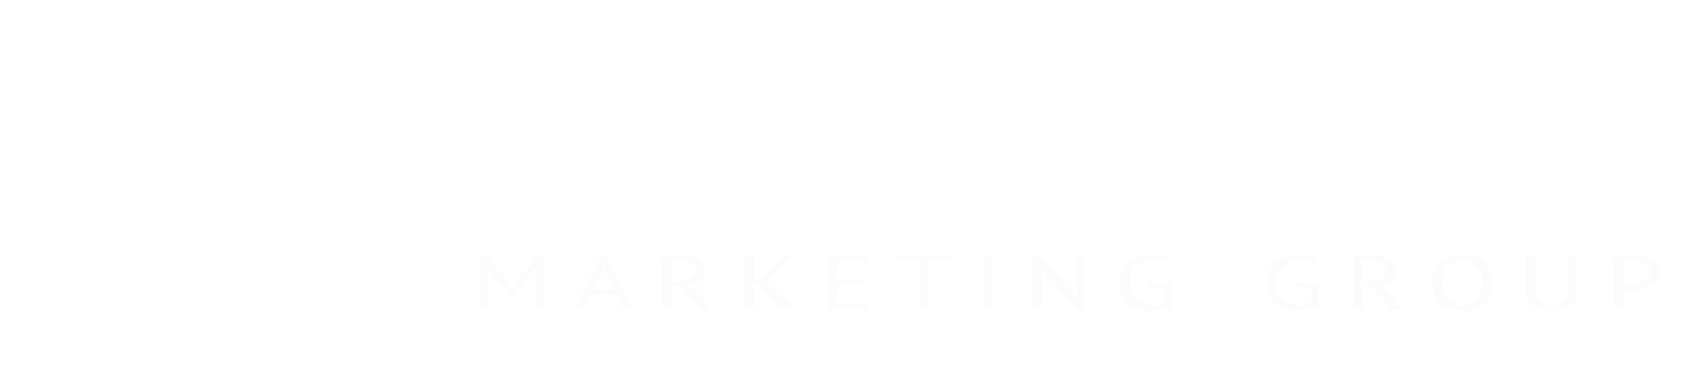 Infinium Marketing Group